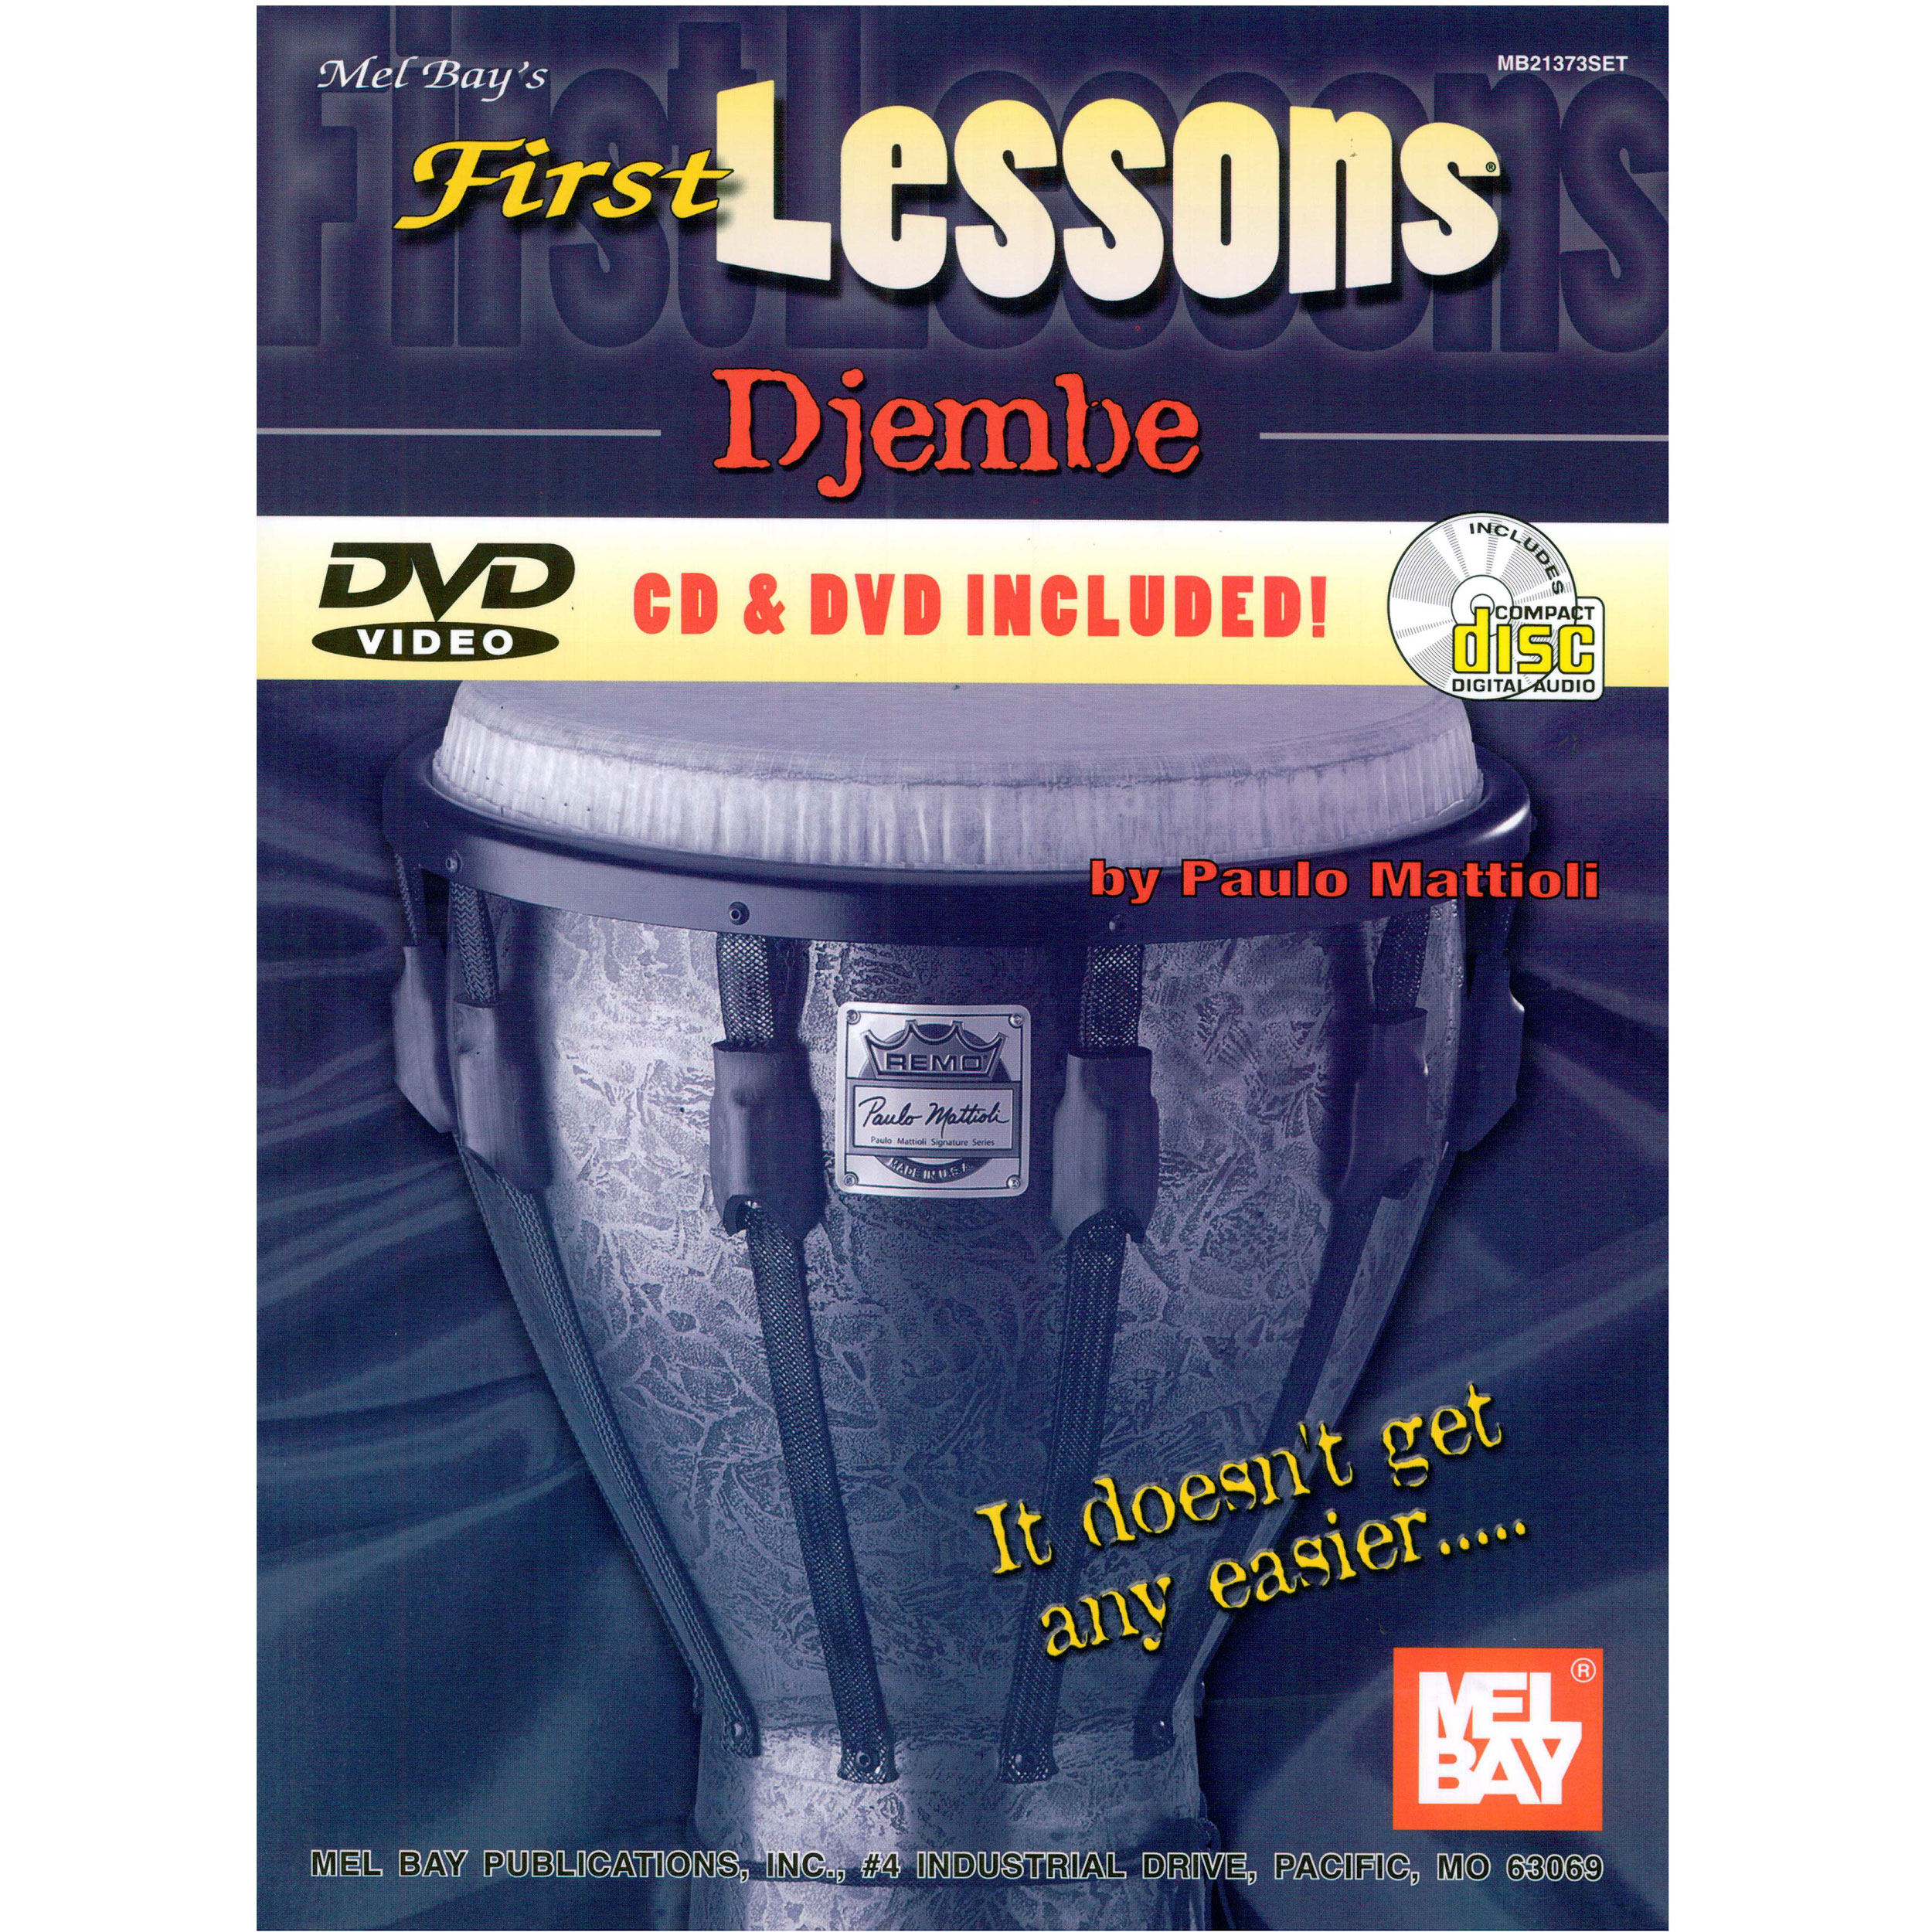 First Lessons: Djembe by Paulo Mattioli